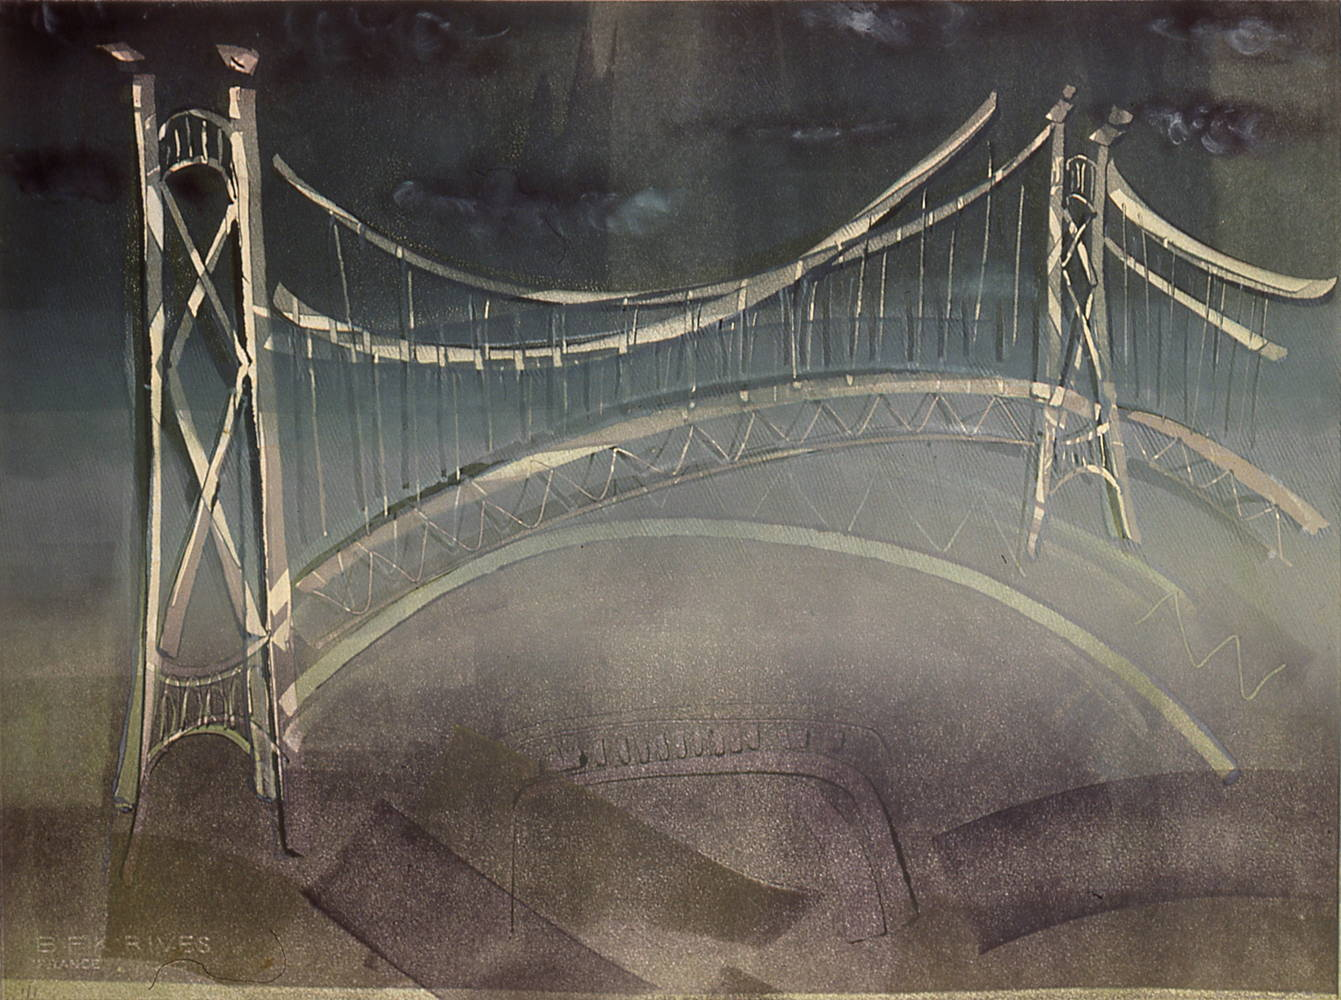 Lion's Gate Bridge by Susan Gransby